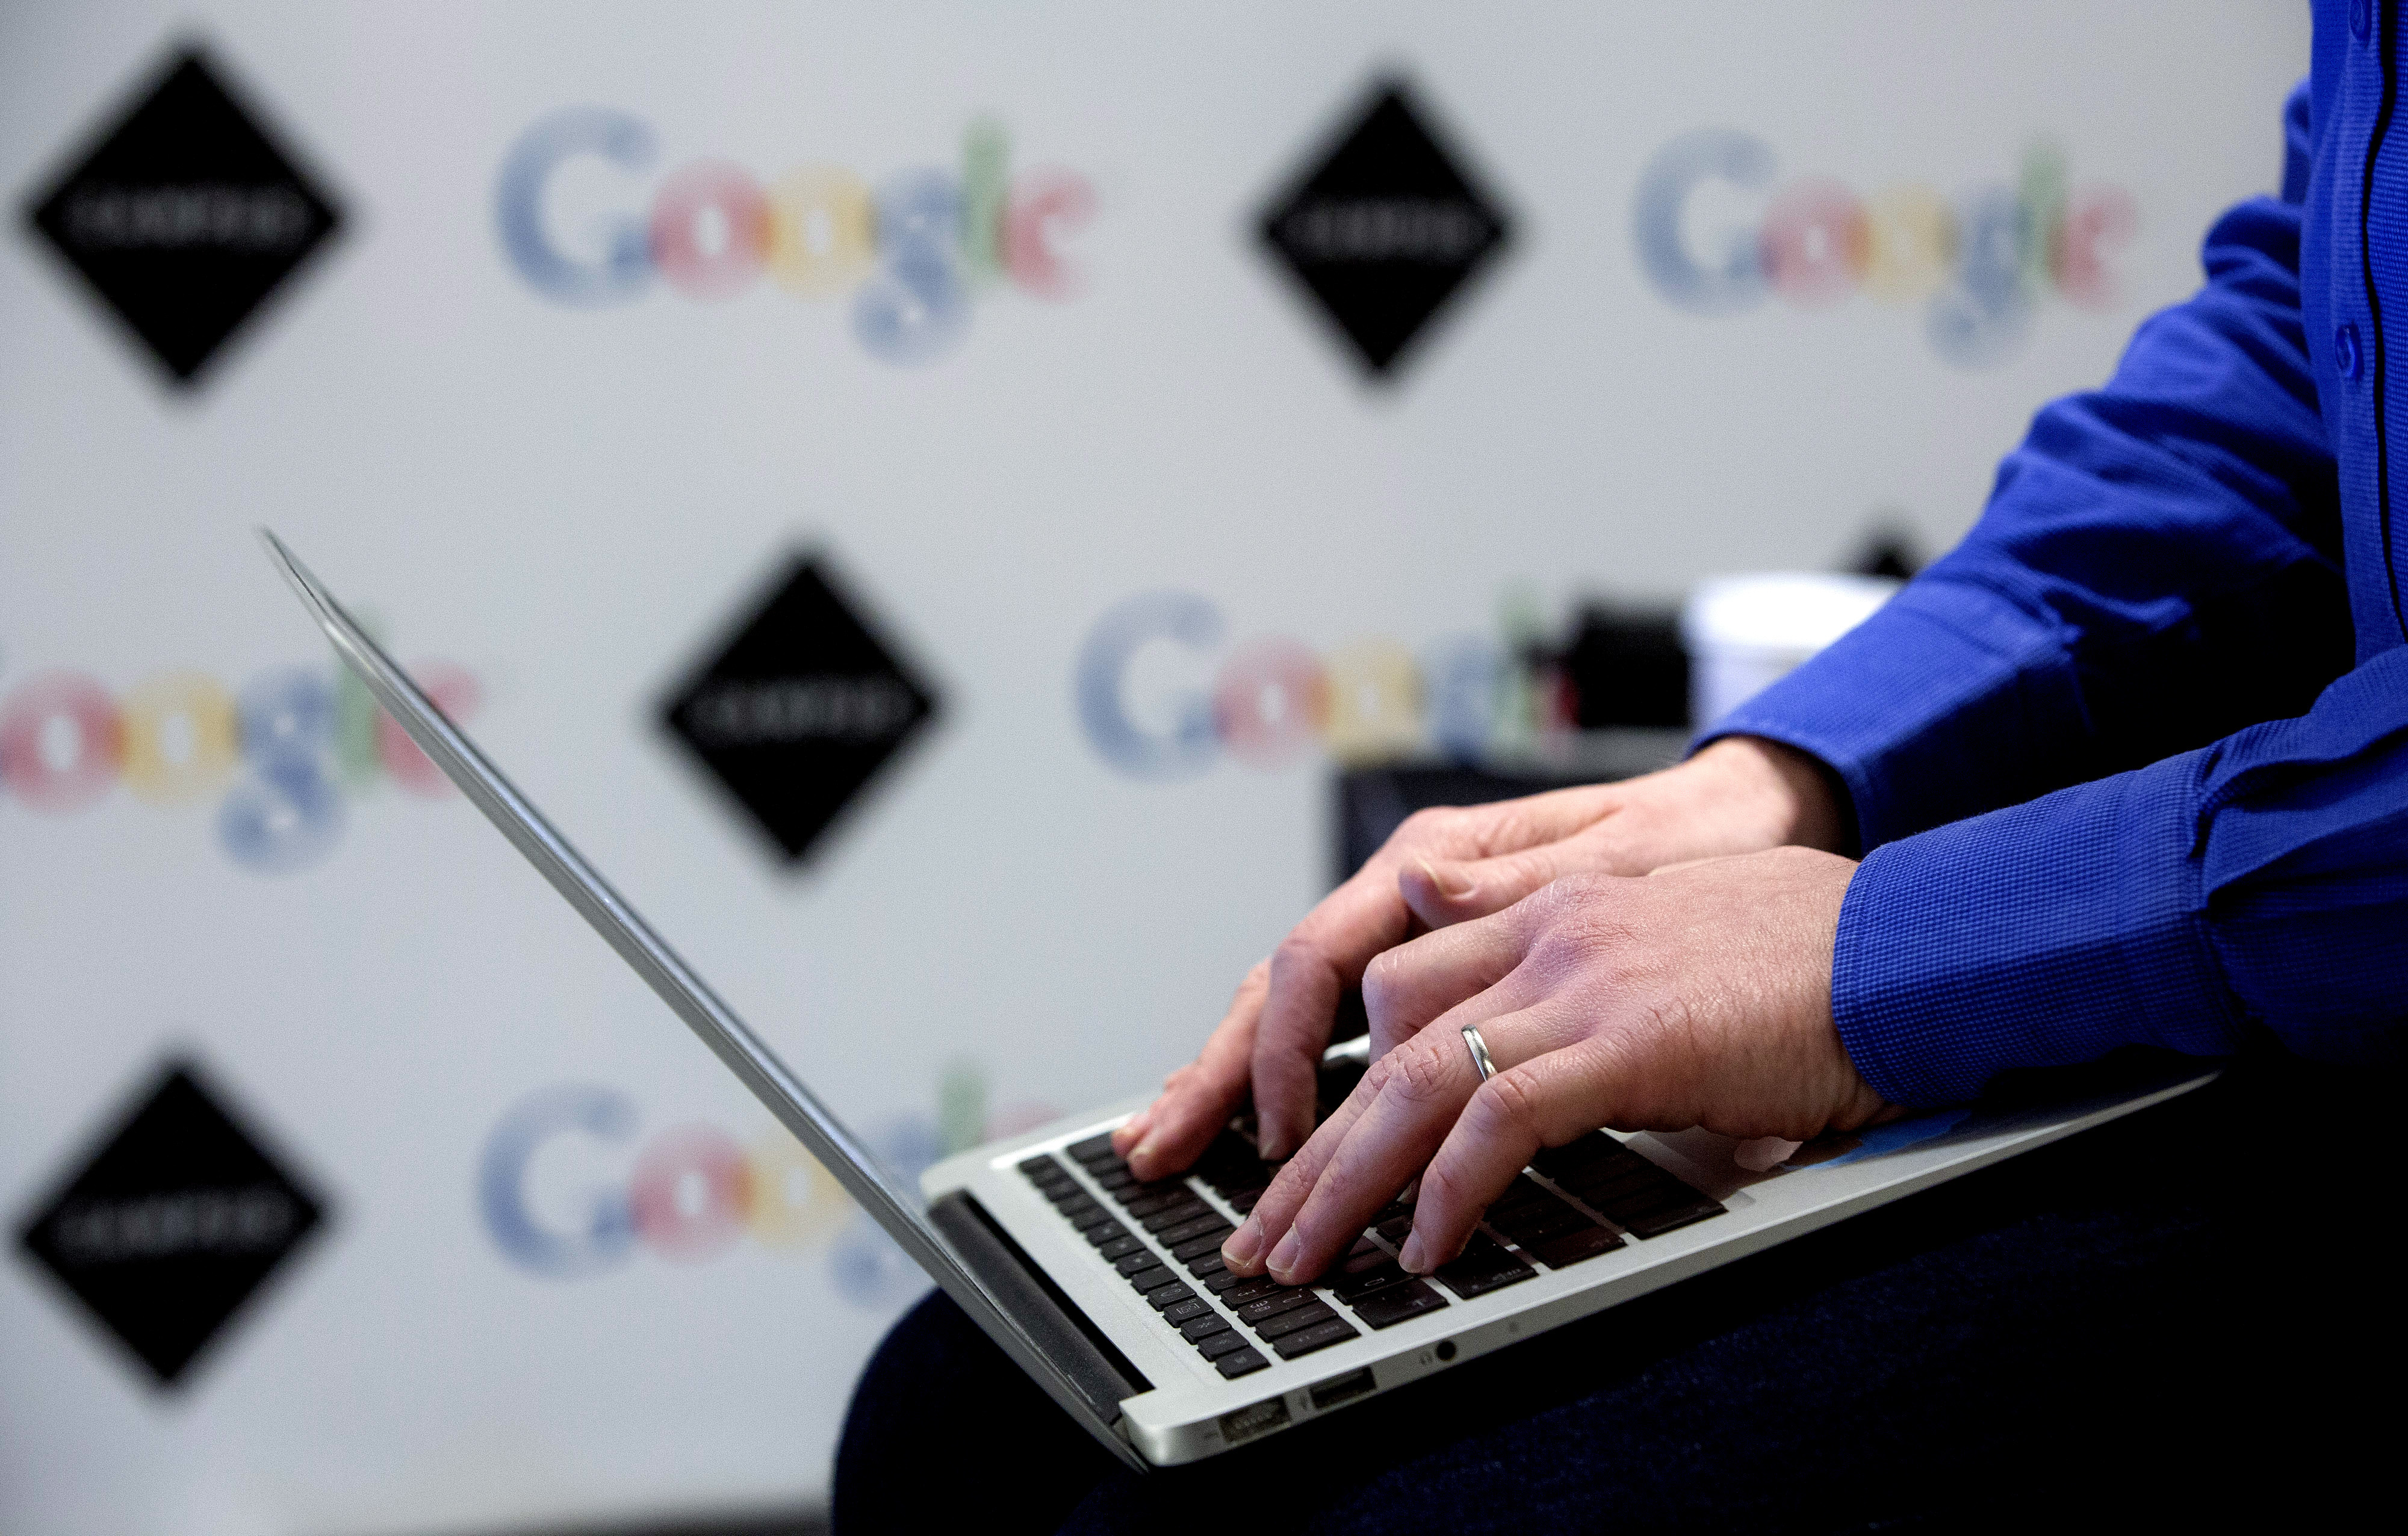 A visitor uses a laptop computer at Google Inc.'s London Campus, in London, U.K., on Monday, Dec. 2, 2013.